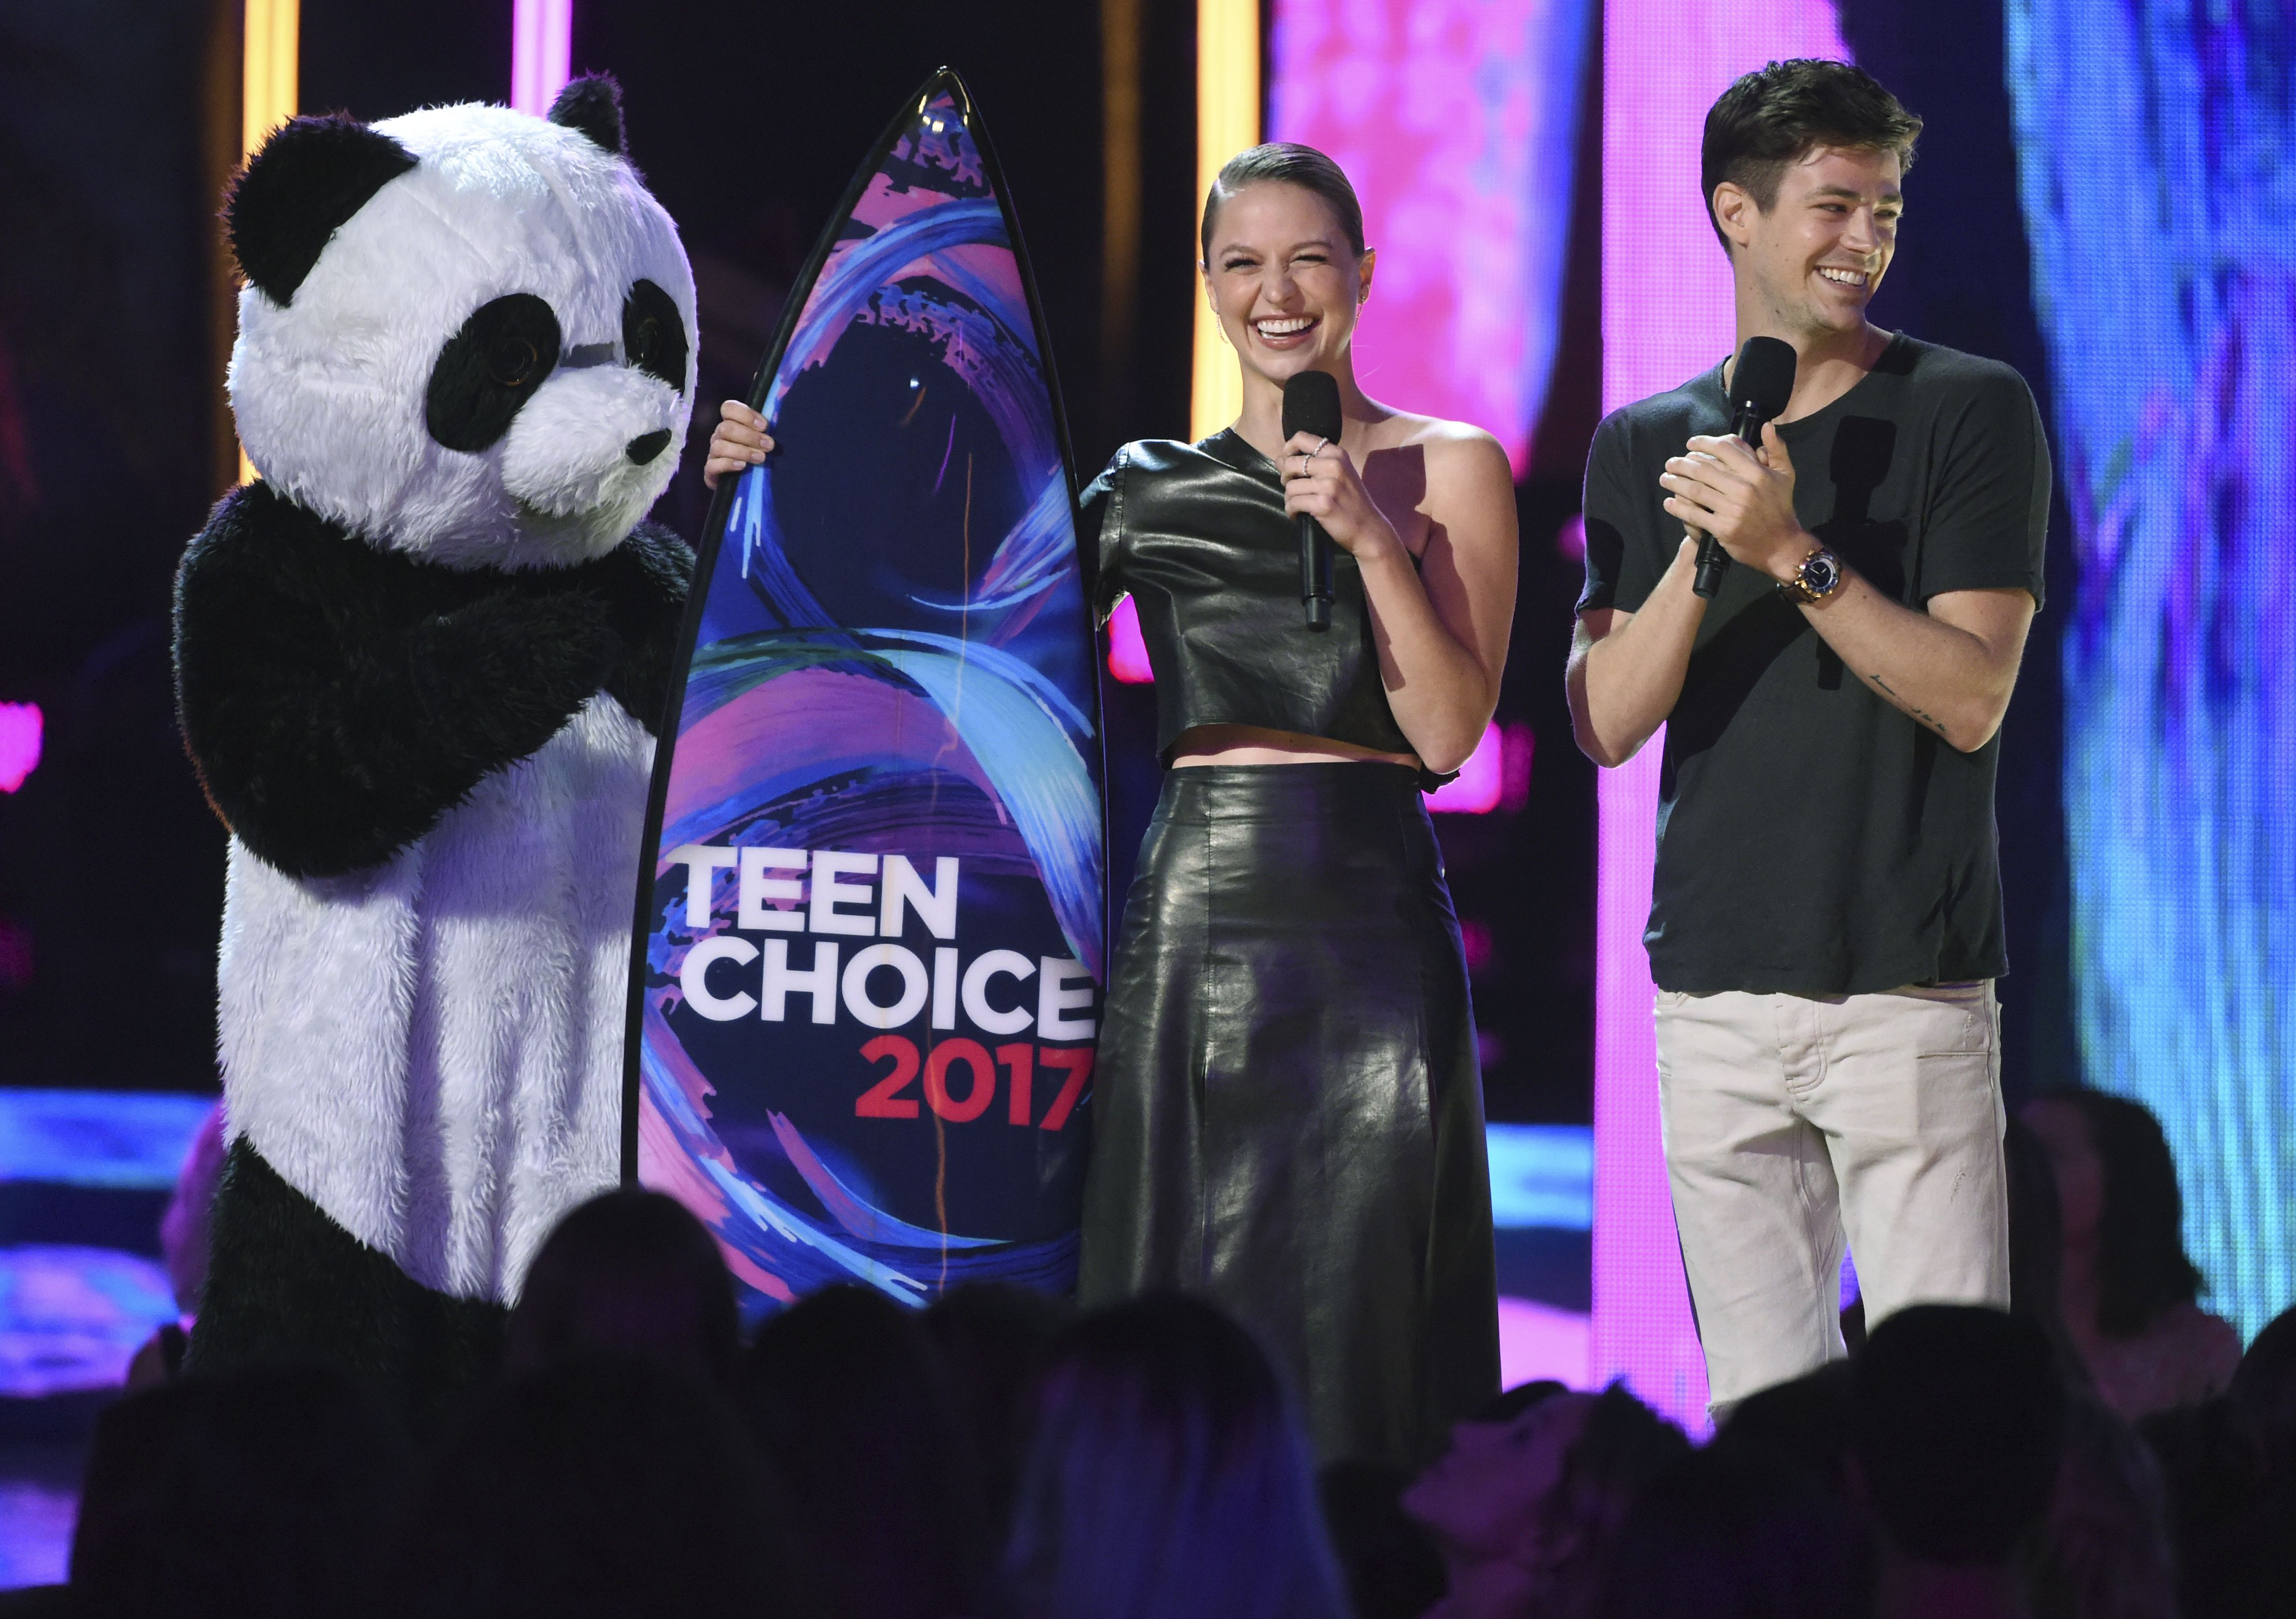 Melissa Benoist de SuperGirl y Grant Gustin de TheFlash los superhéroes favoritos en los TeenChoiceAwards2017.jpg